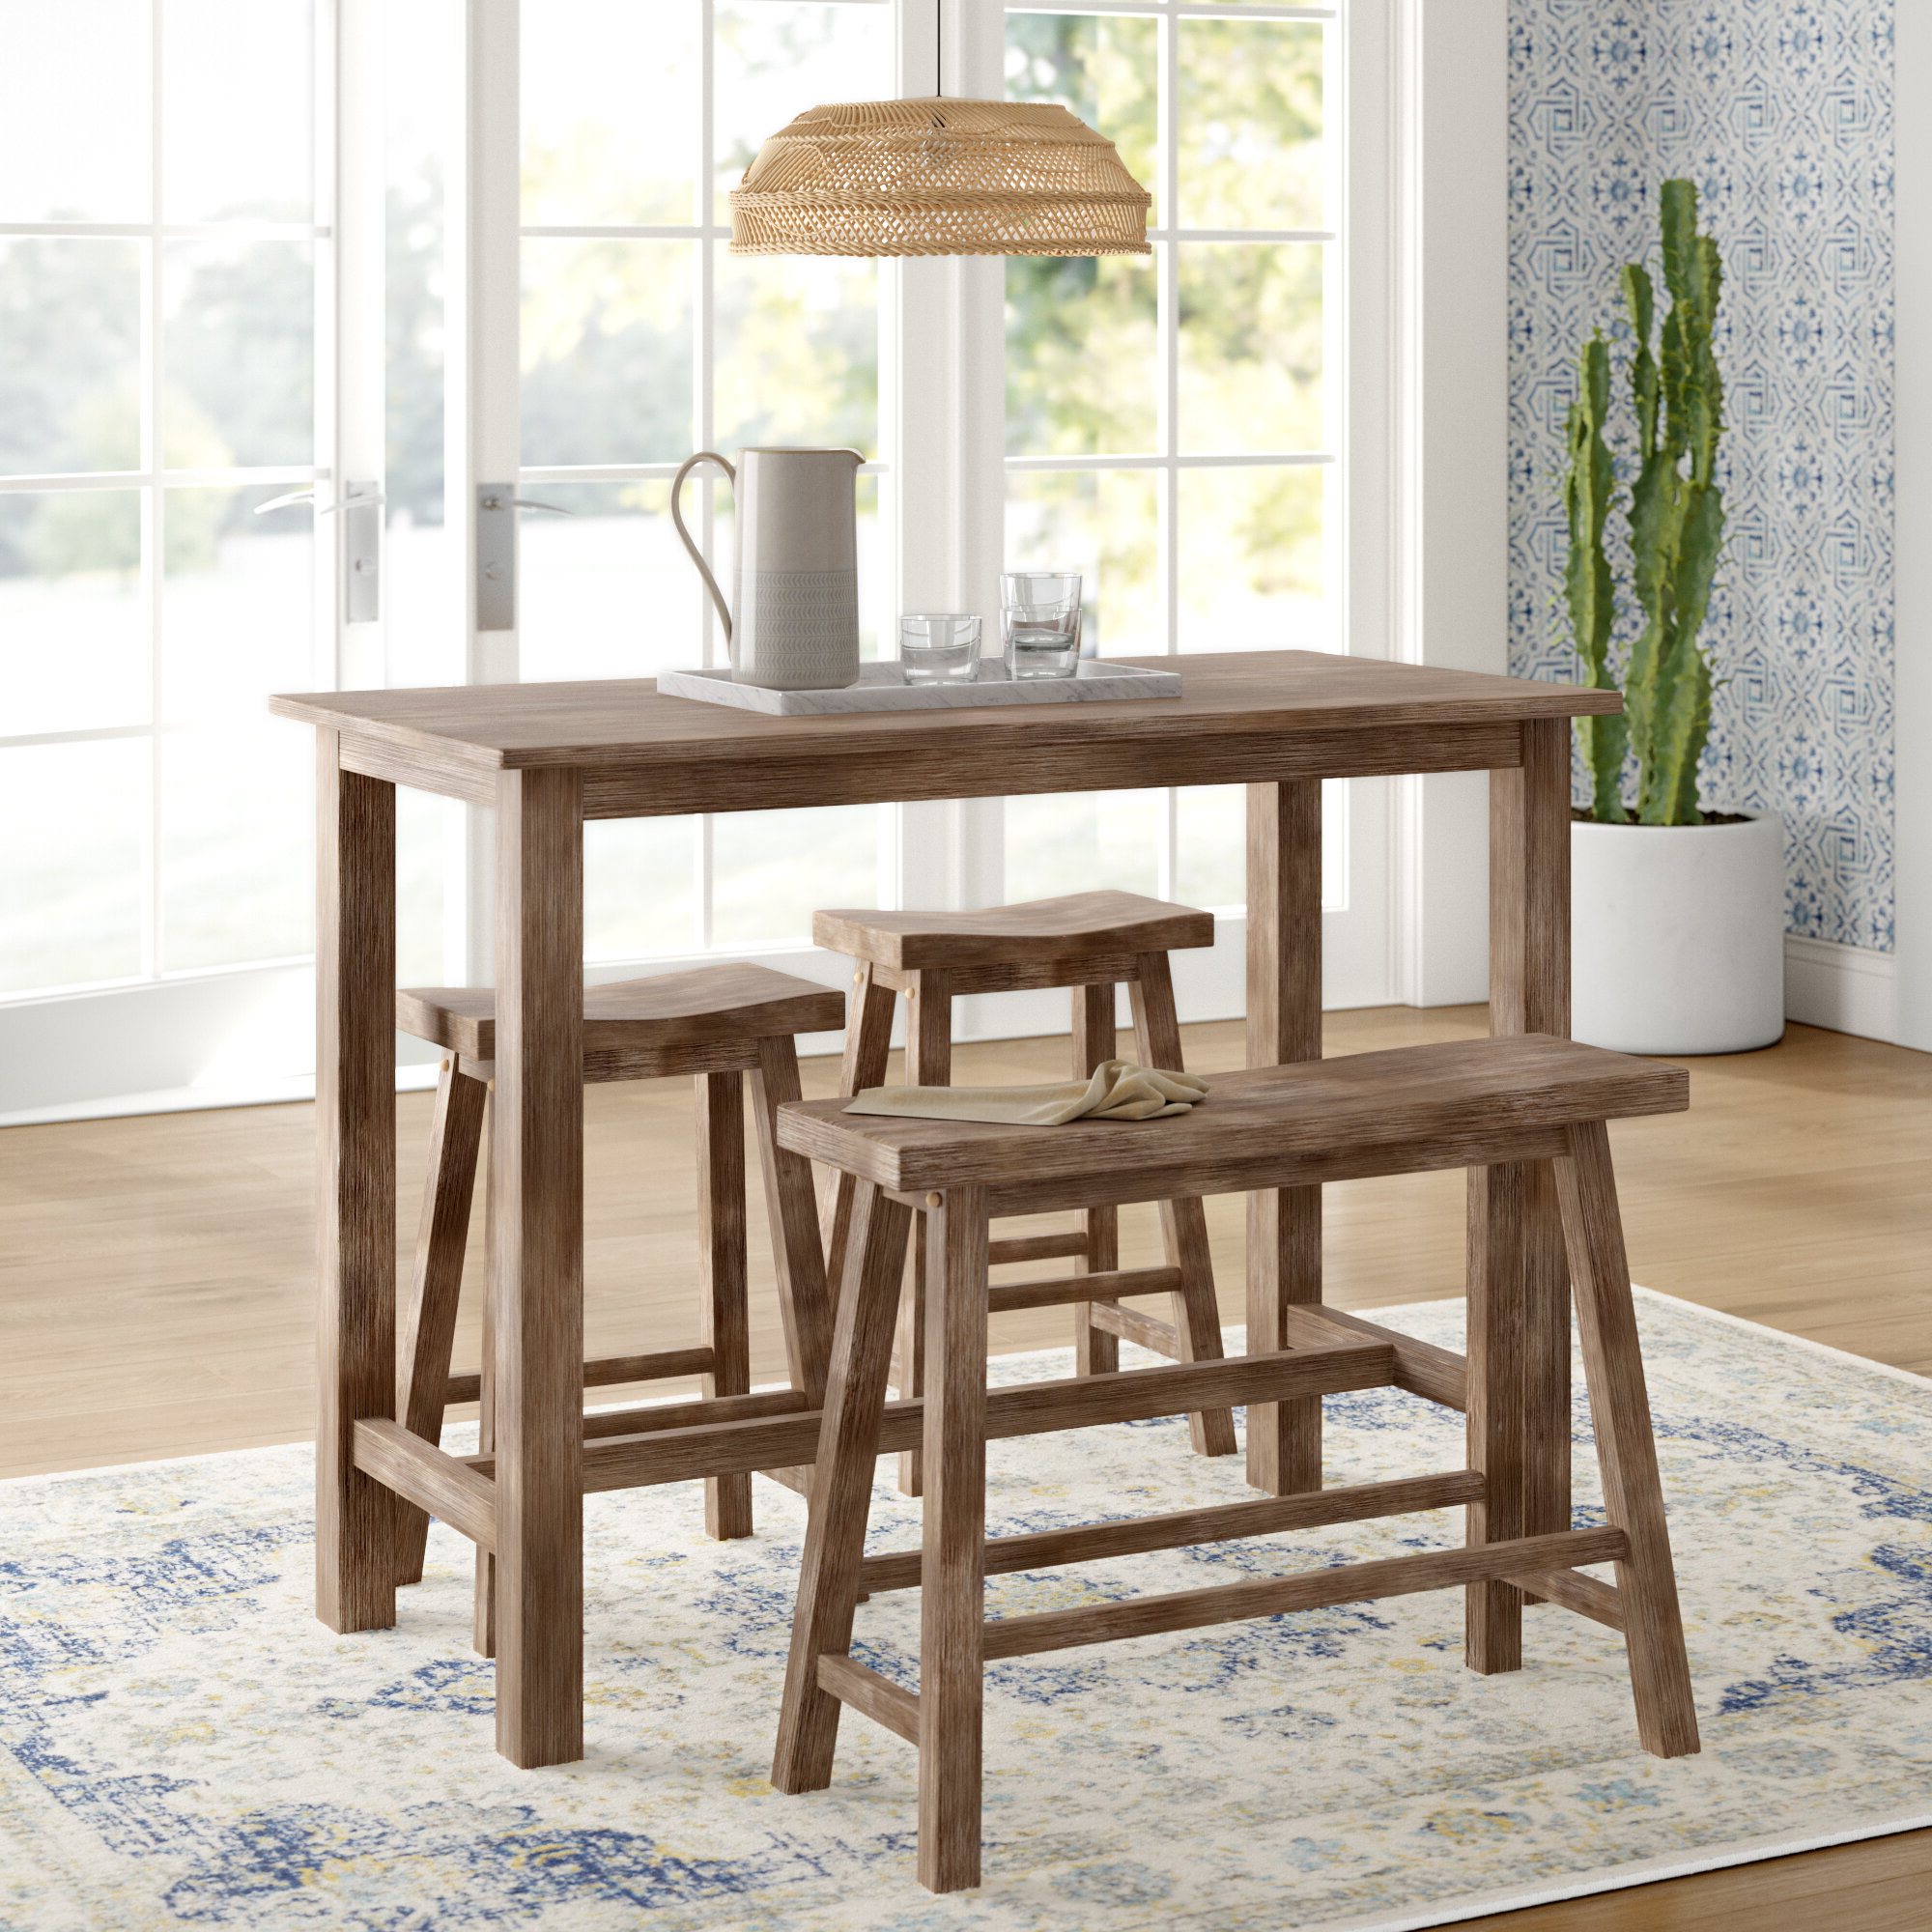 Preferred Raymundo 4 Piece Pub Table Set Pertaining To Winsted 4 Piece Counter Height Dining Sets (View 10 of 20)